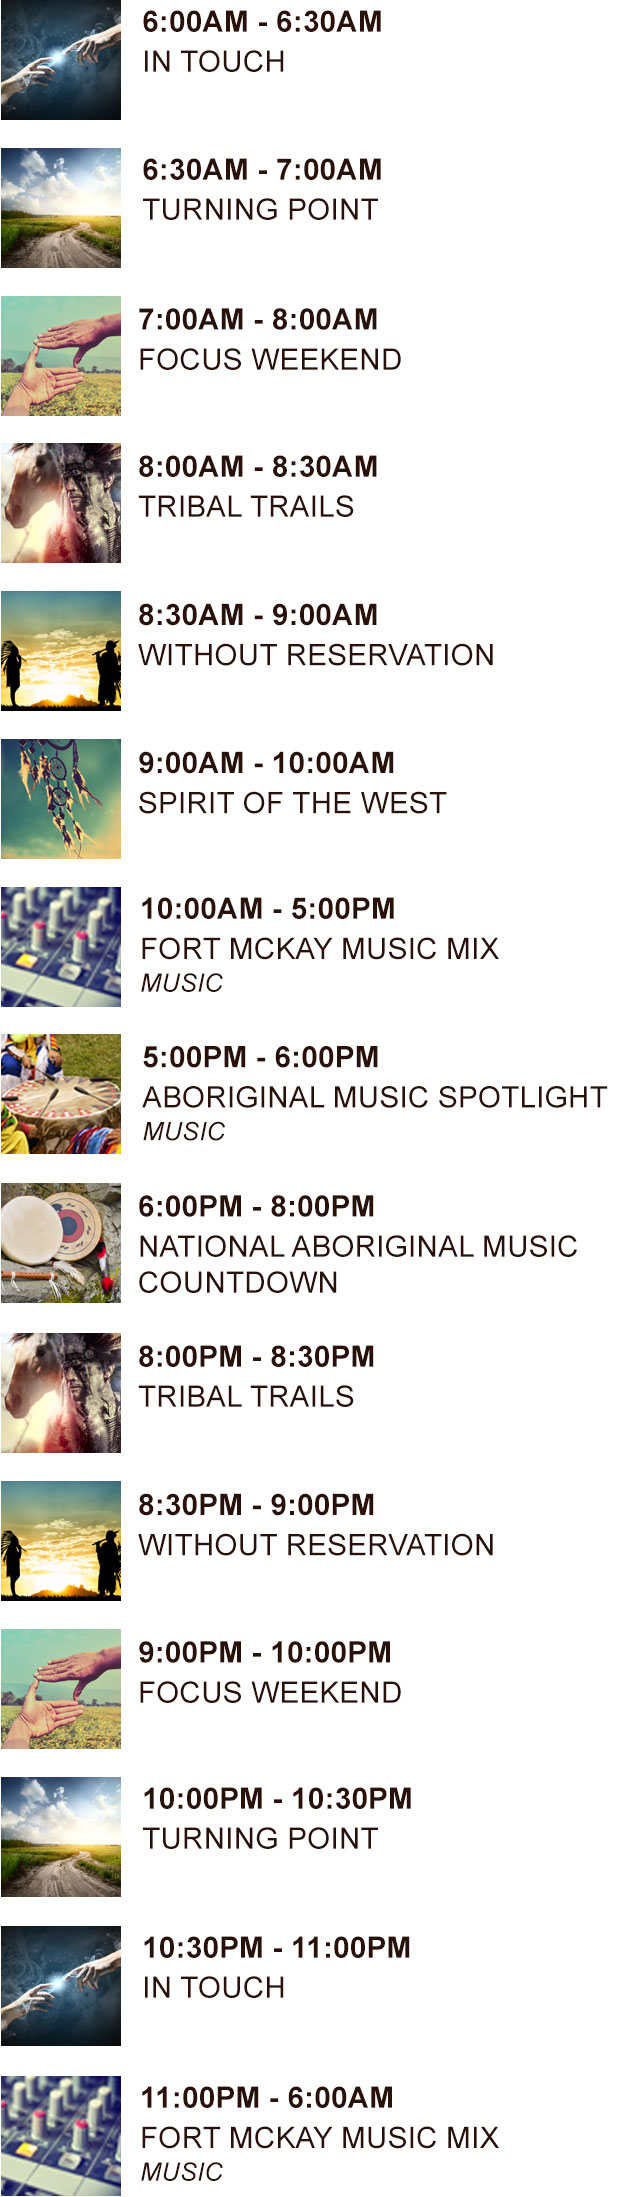 Fort-Mckay-Radio-Station---Schedule-Internal-page-SUN